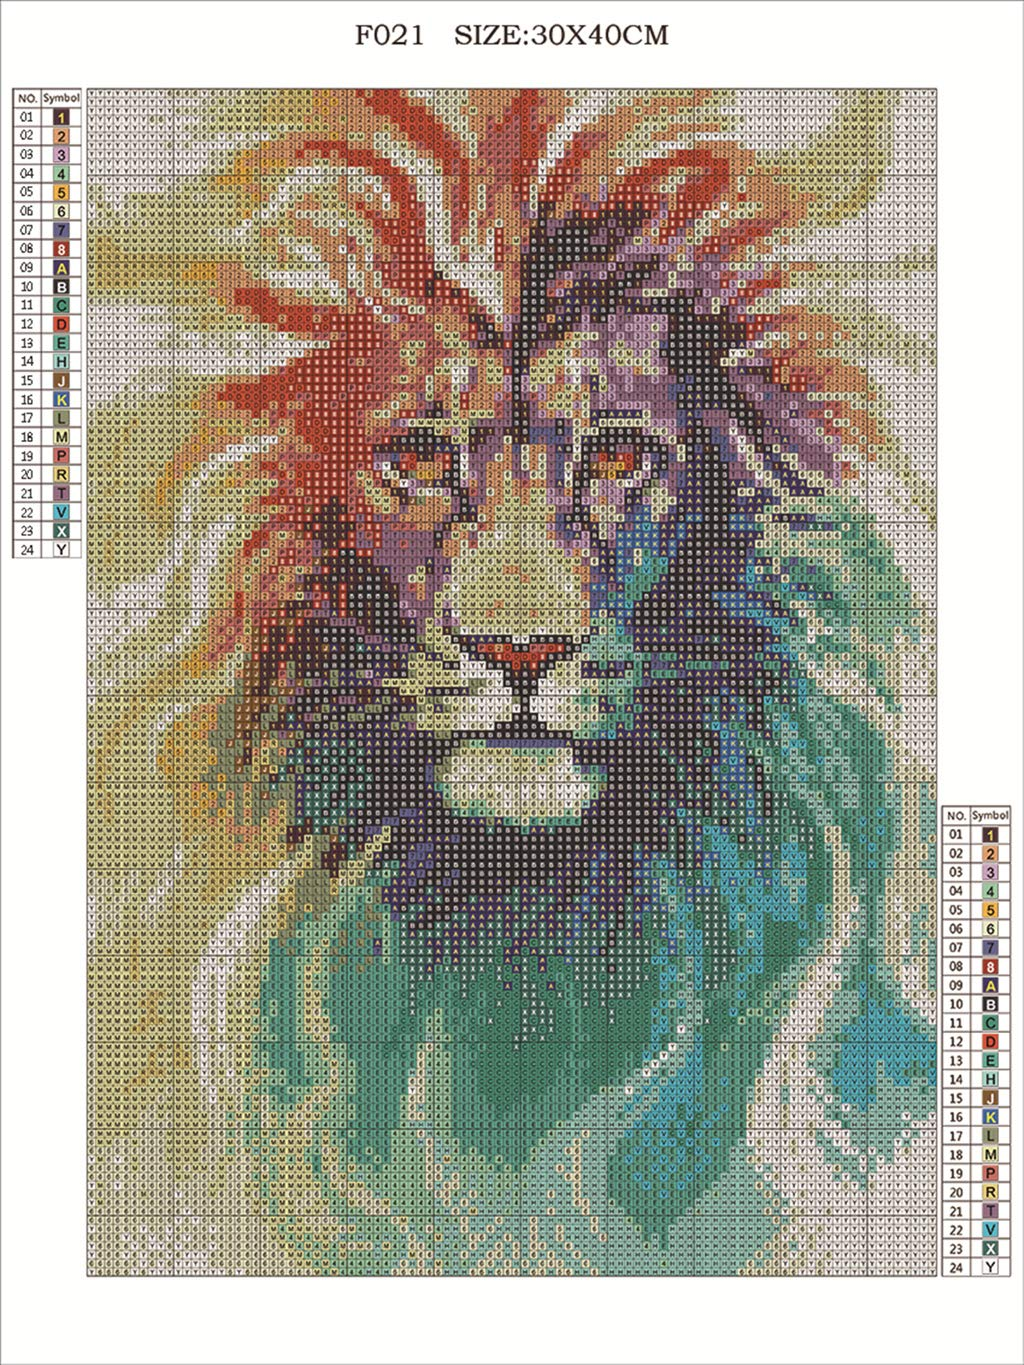 Full Square Diamond Angry Lion Embroidery Rhinestone Cross Stitch Arts Craft Supply for Home Wall Decor DIY 5D Diamond Painting Kit